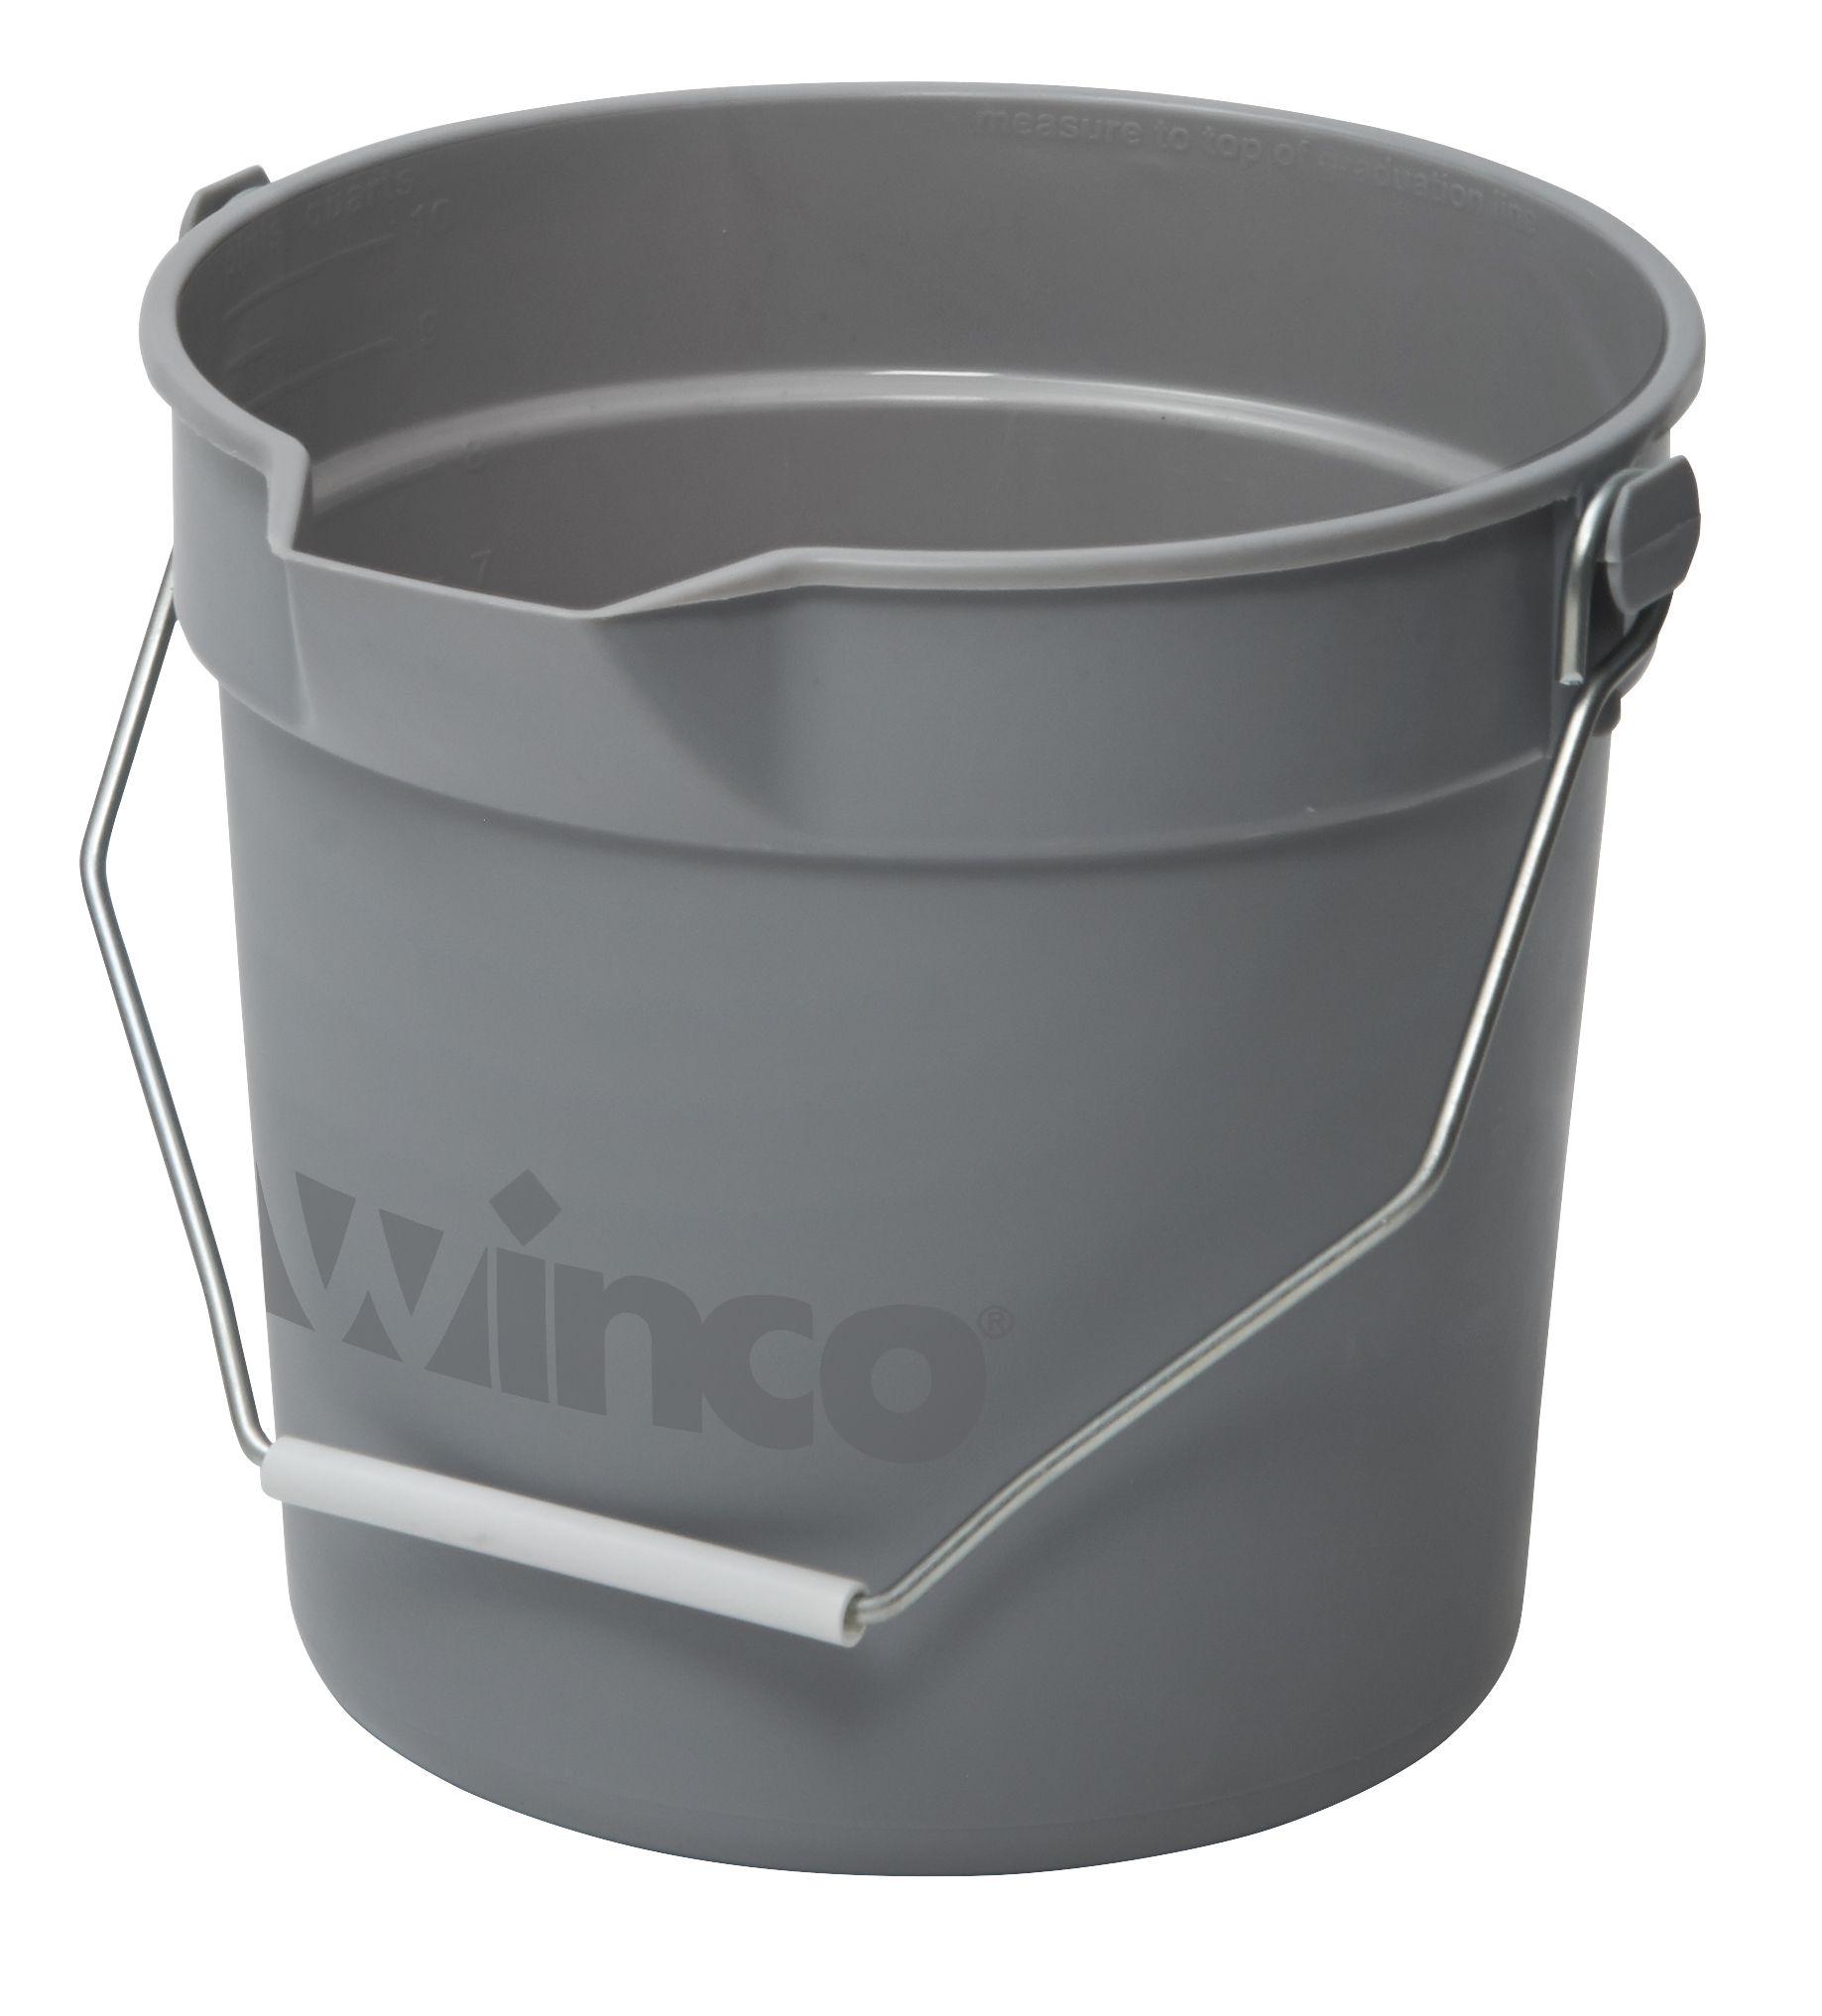 Winco UPP-10G janitorial accessories